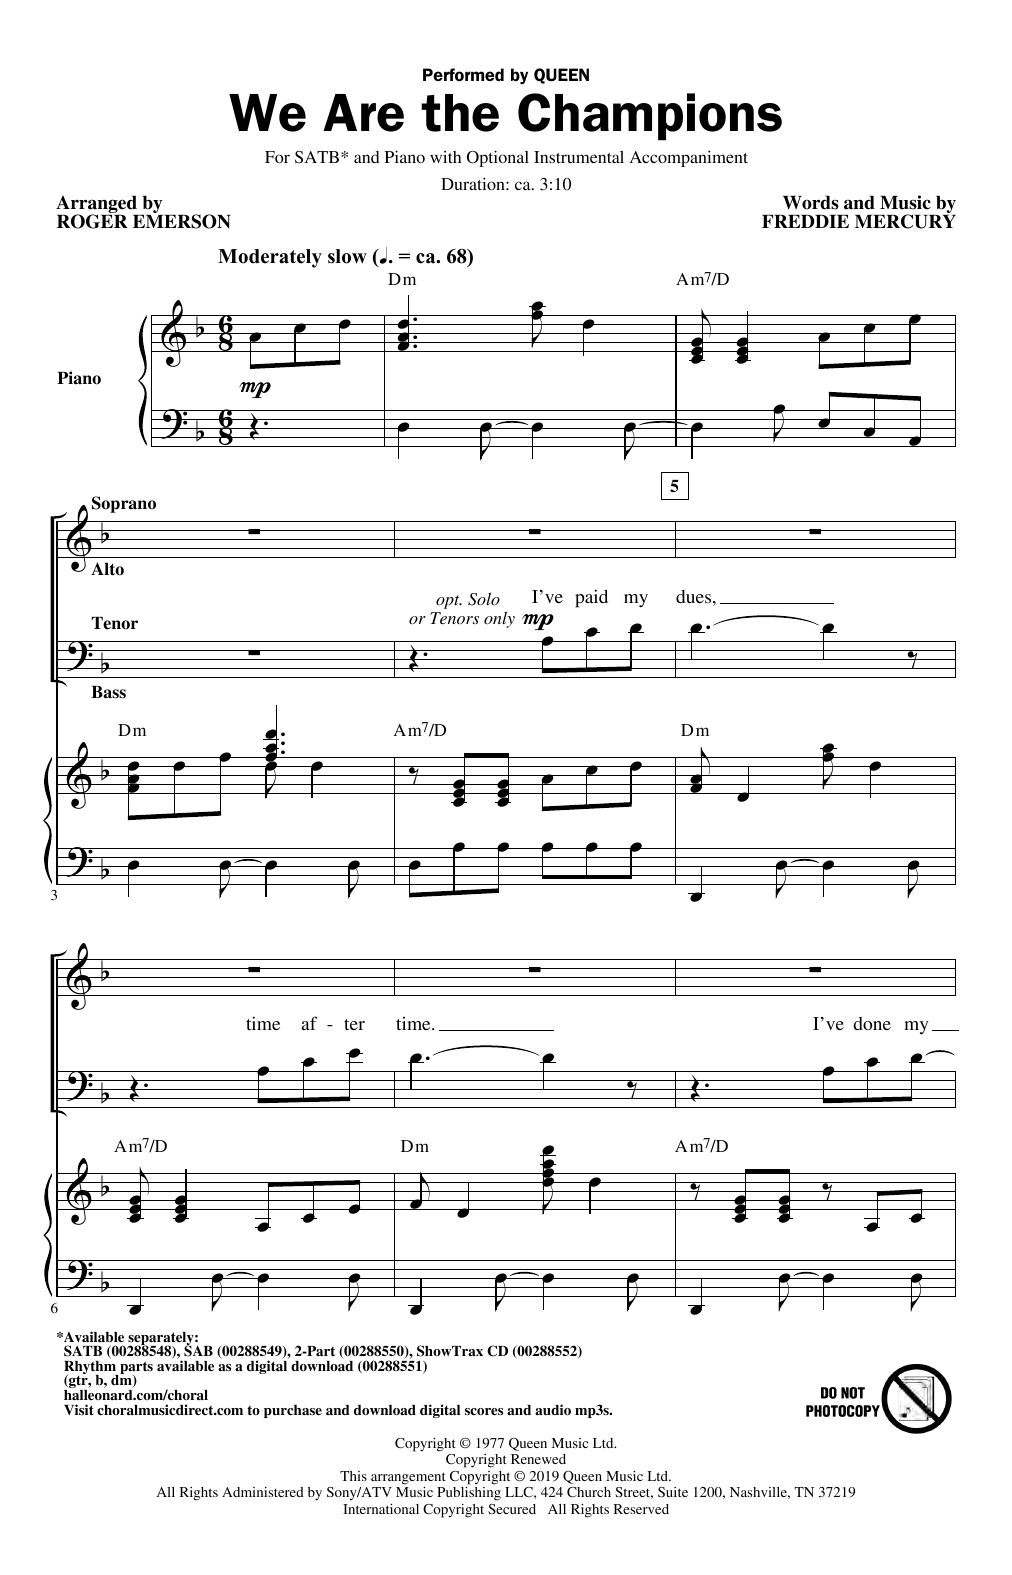 We Are The Champions (arr. Roger Emerson) (SATB Choir)